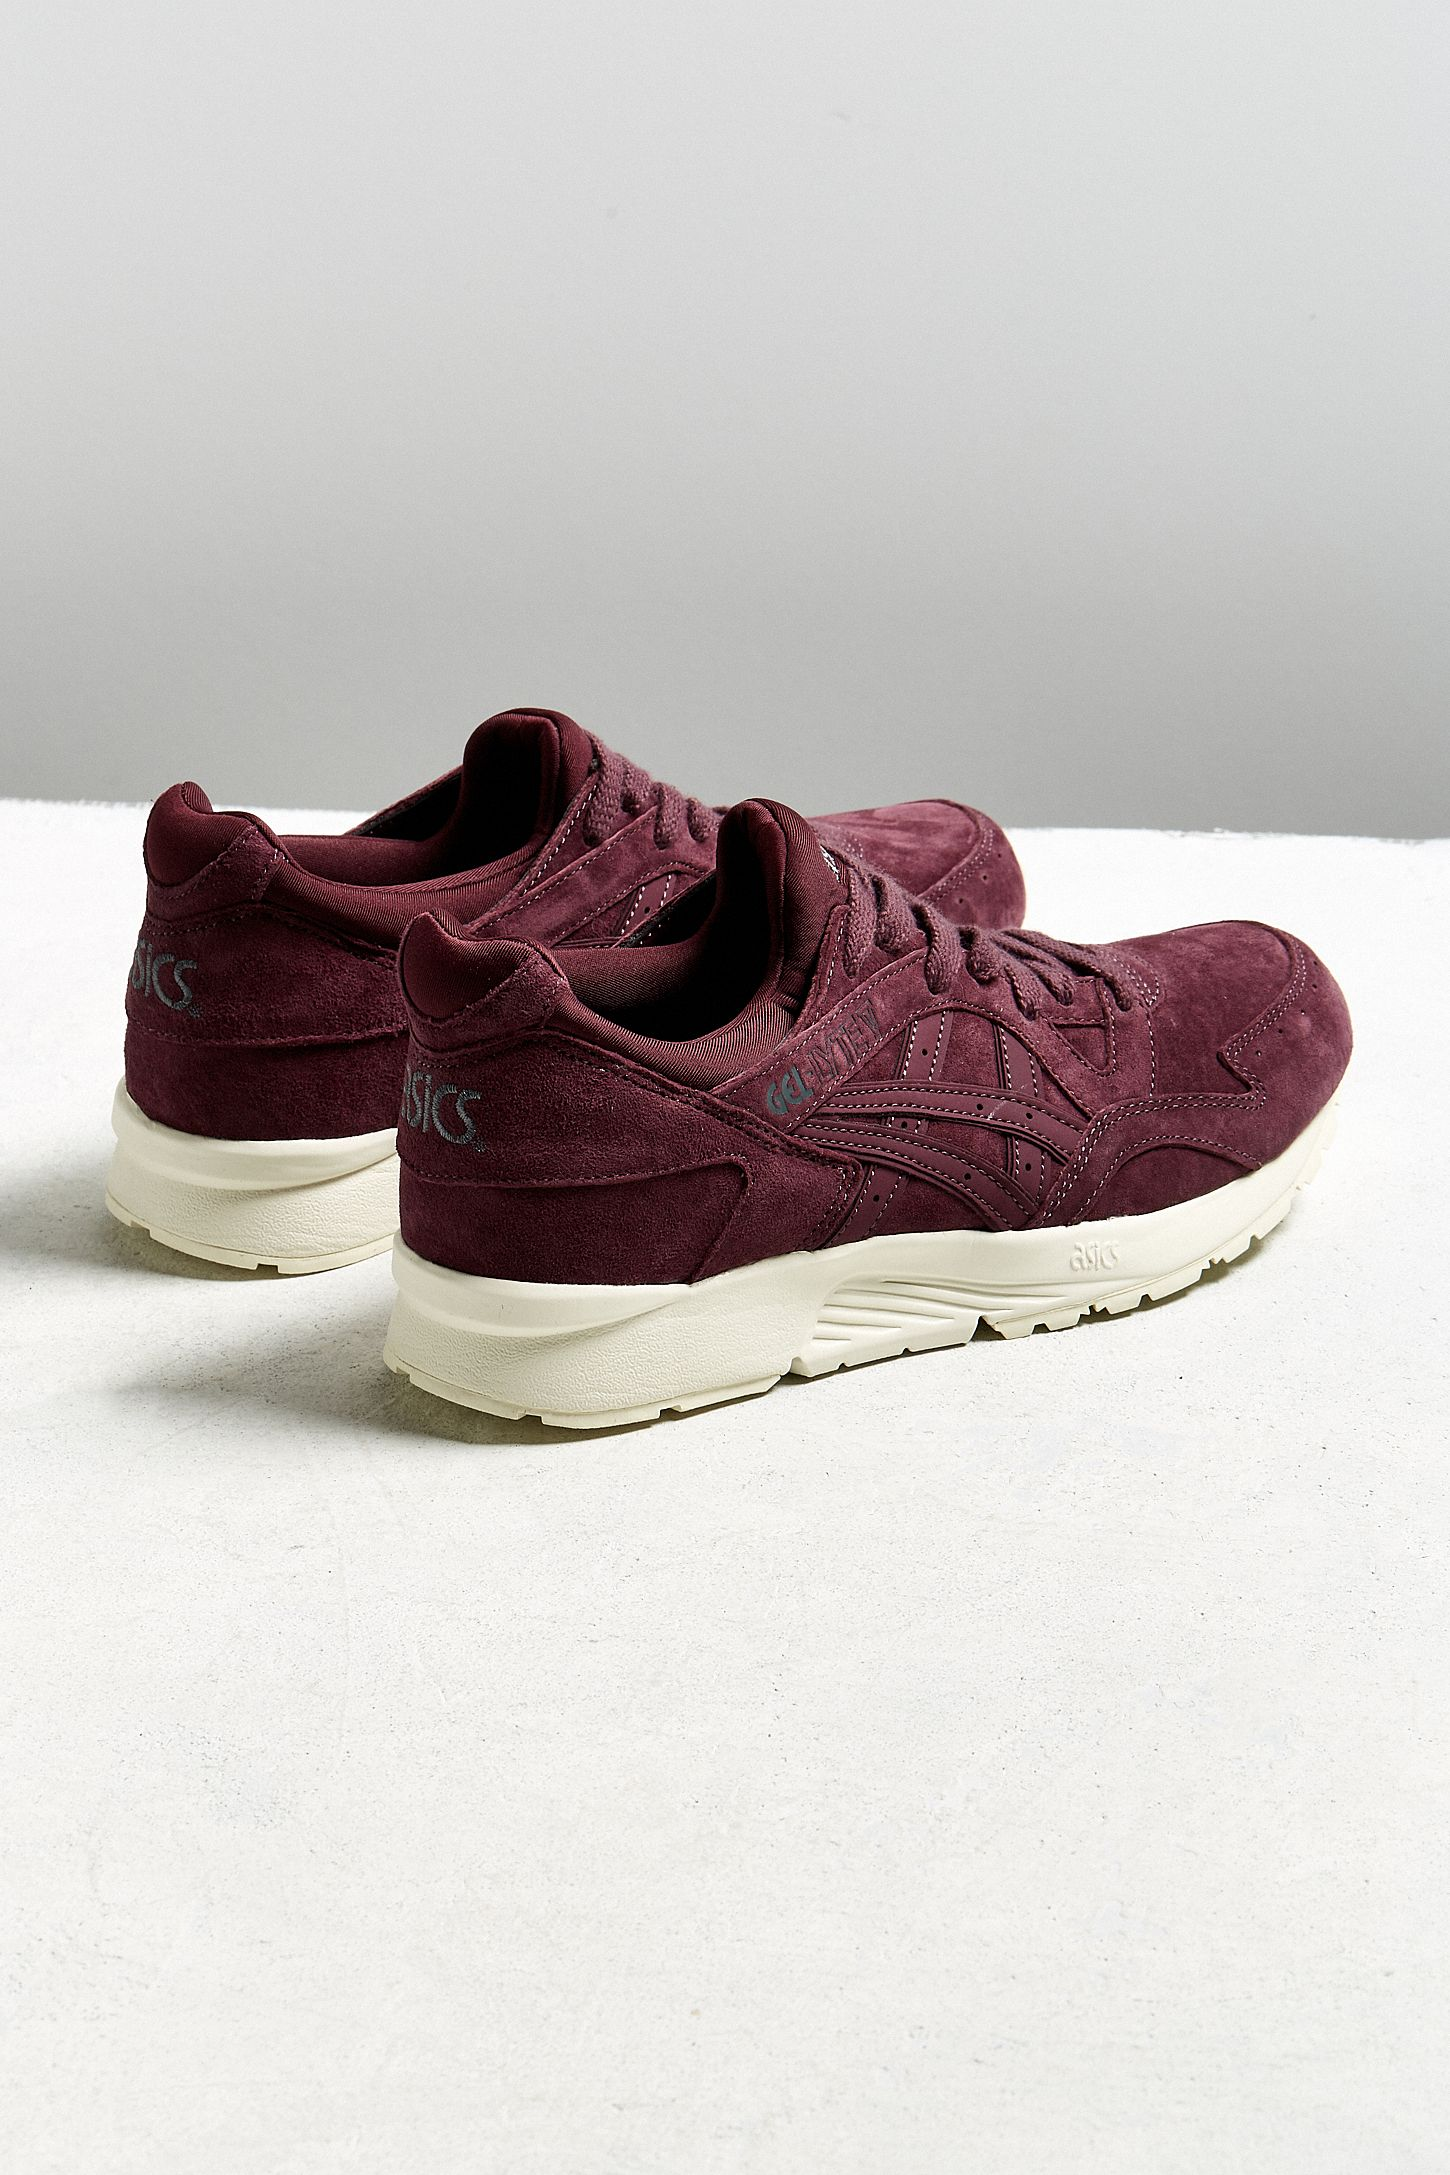 asics gel lyte v description